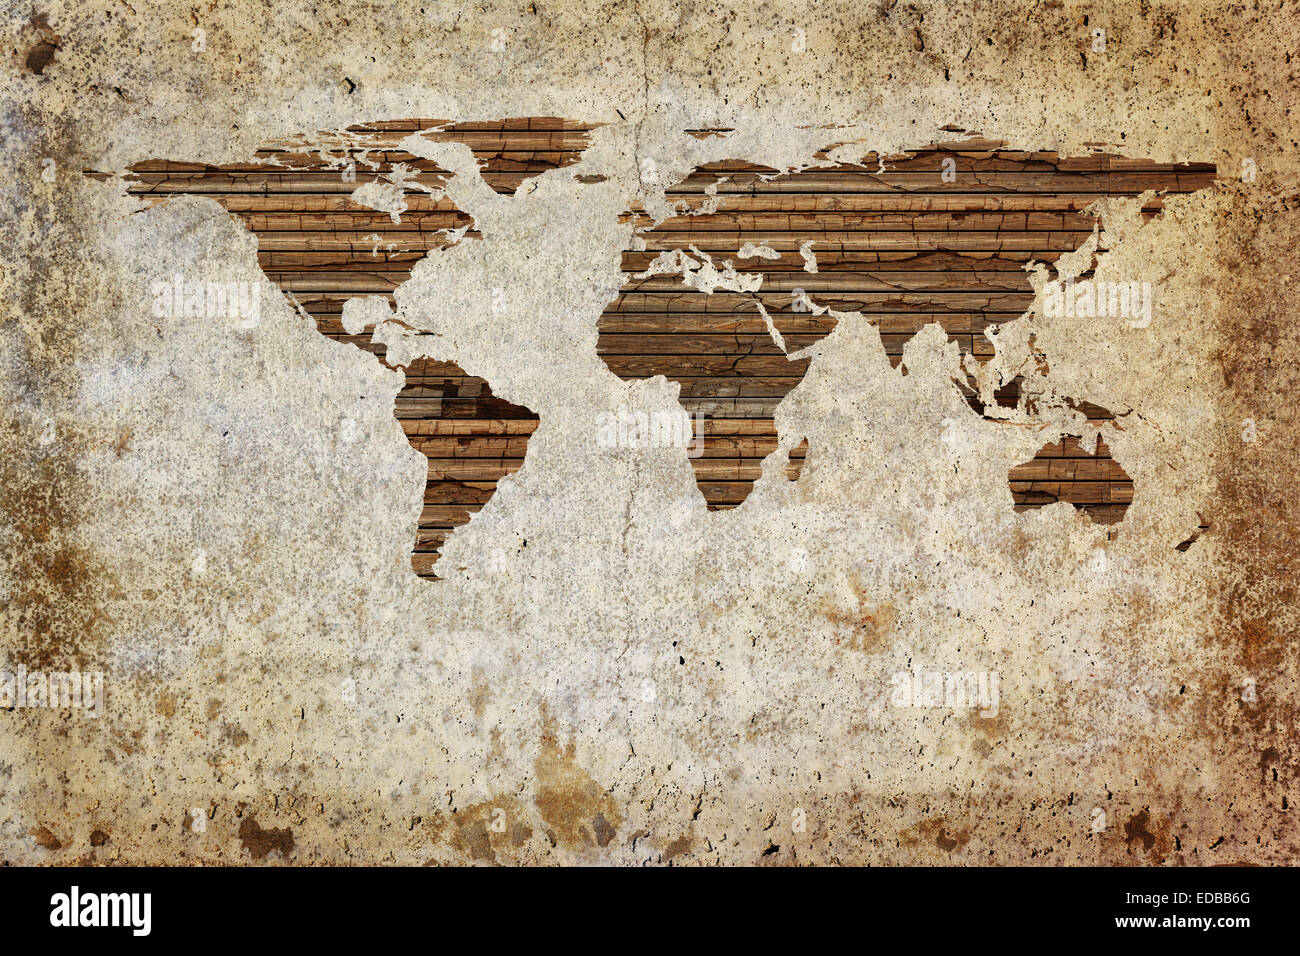 Grunge Vintage Wooden Plank World Map Background Stock Photo - Vintage world map on wood